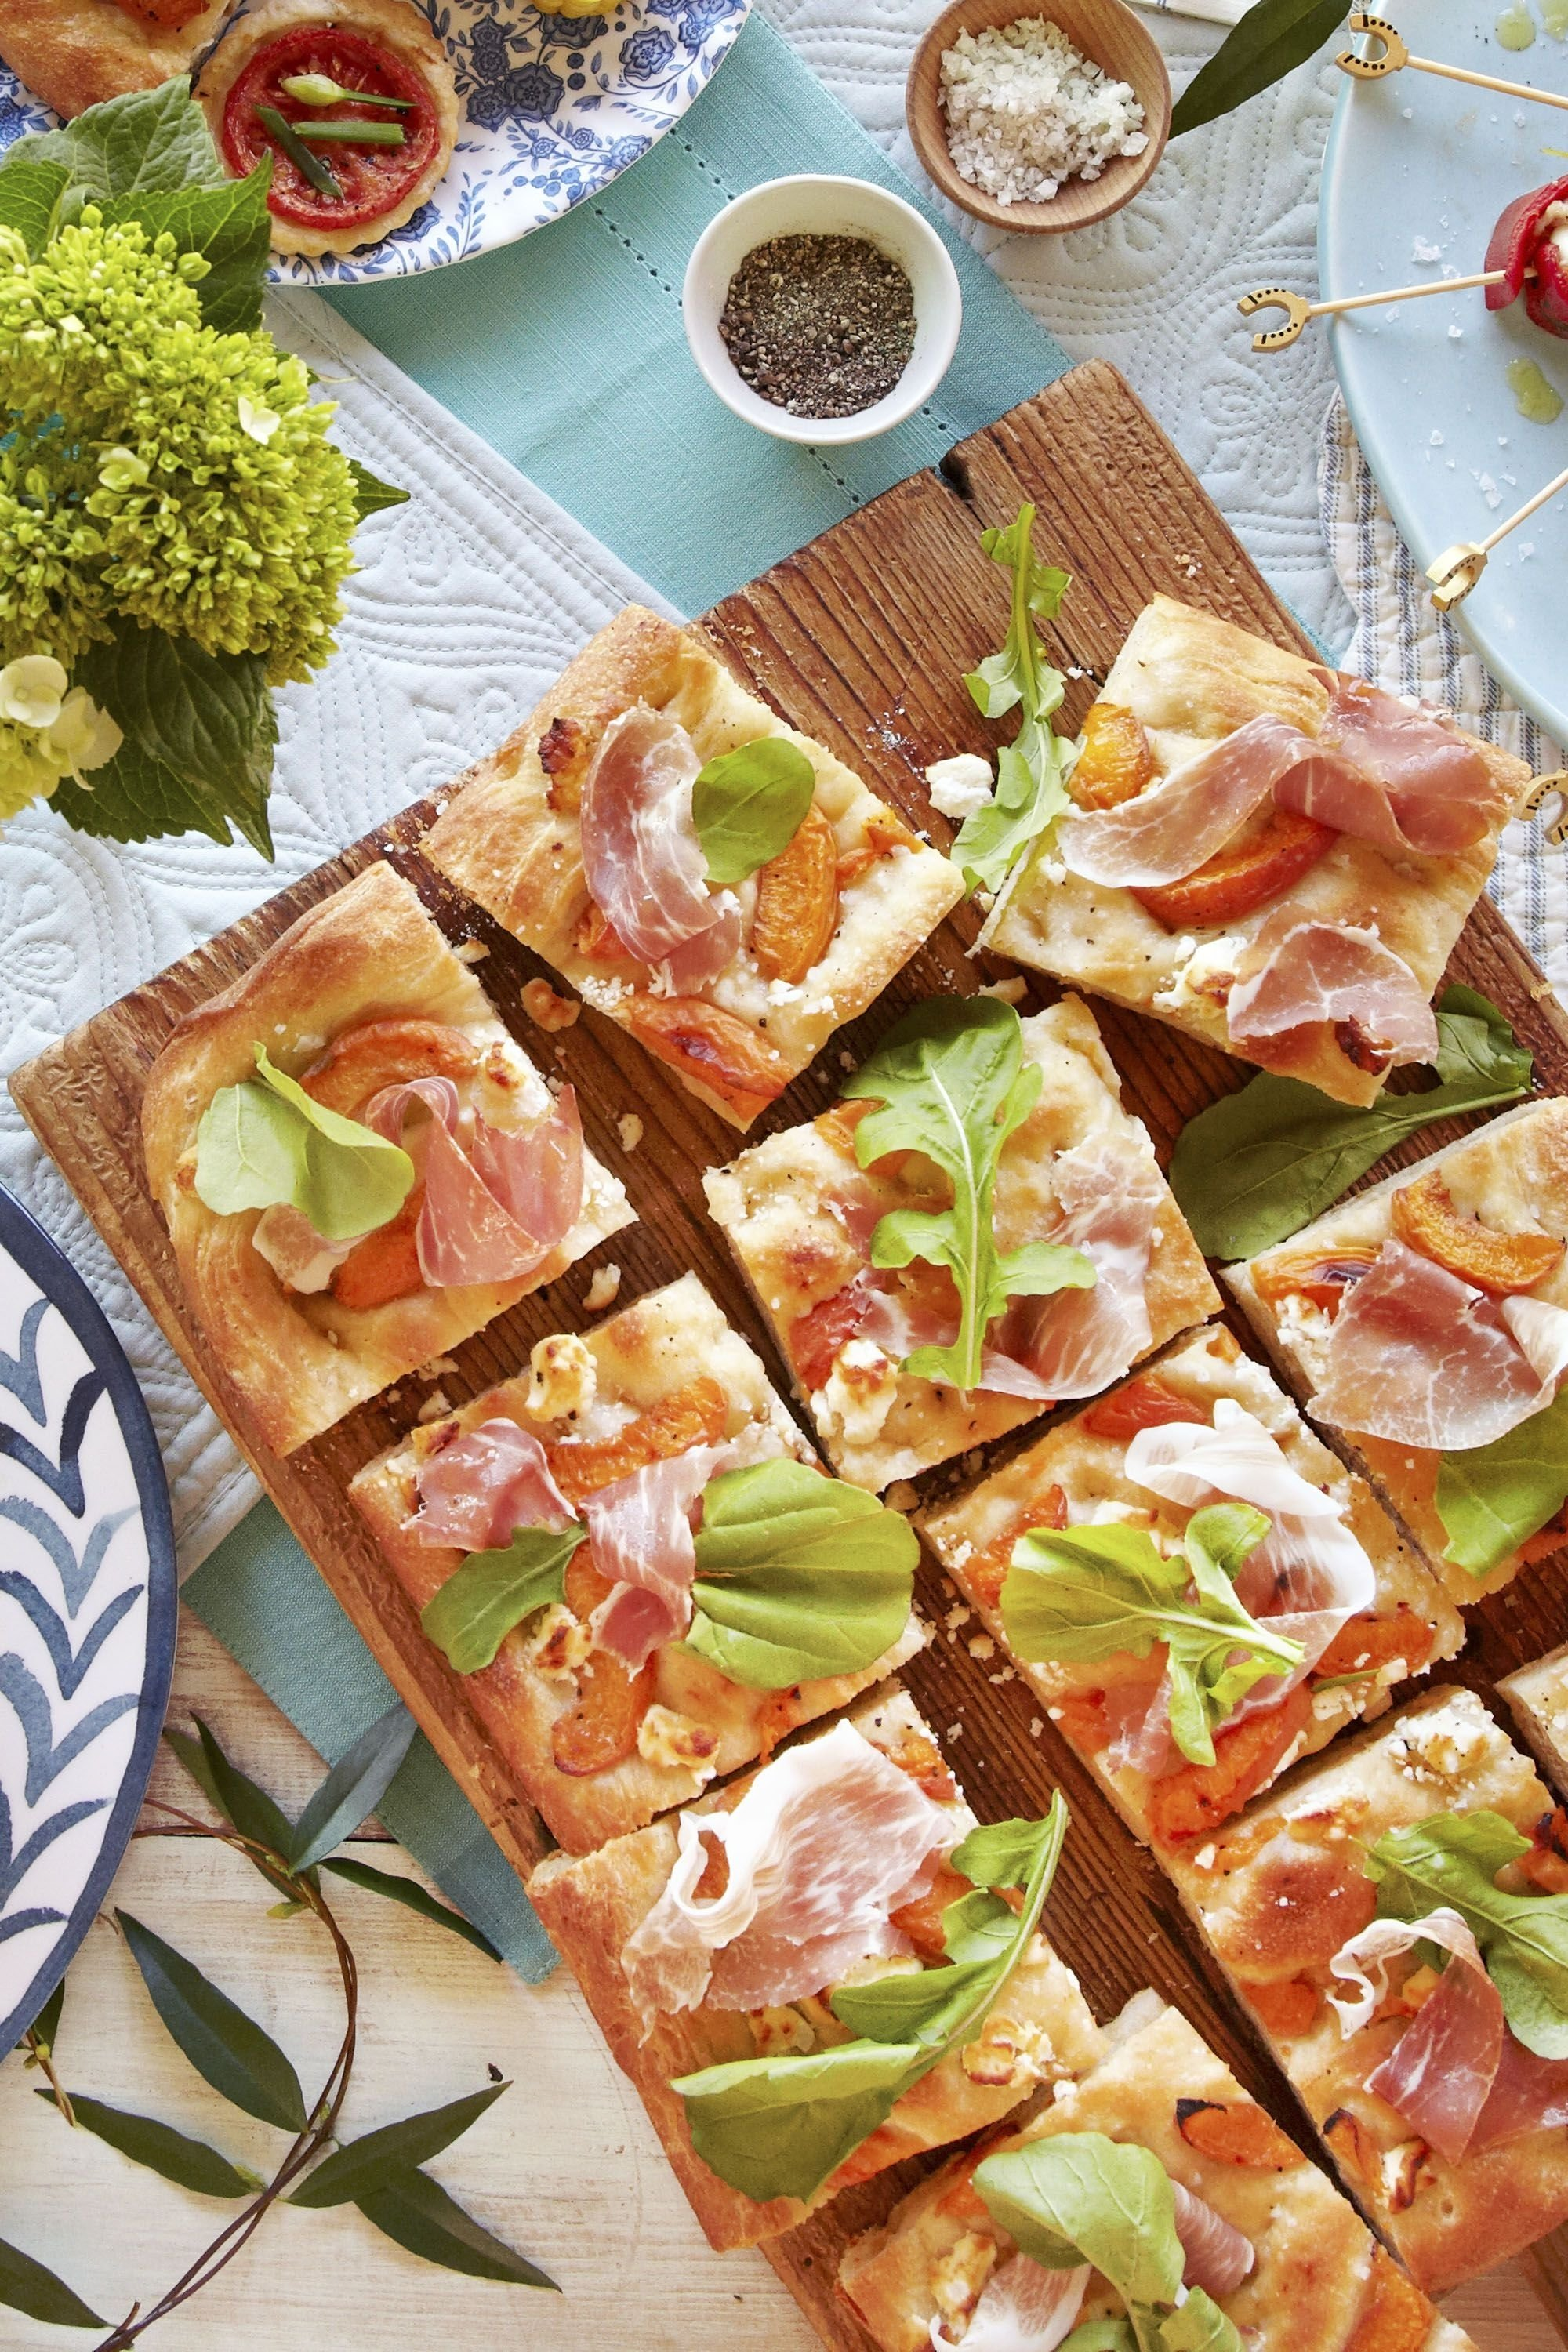 10 Beautiful Picnic Food Ideas For Couples 65 summer picnic recipes easy food ideas for a summer picnic 2021